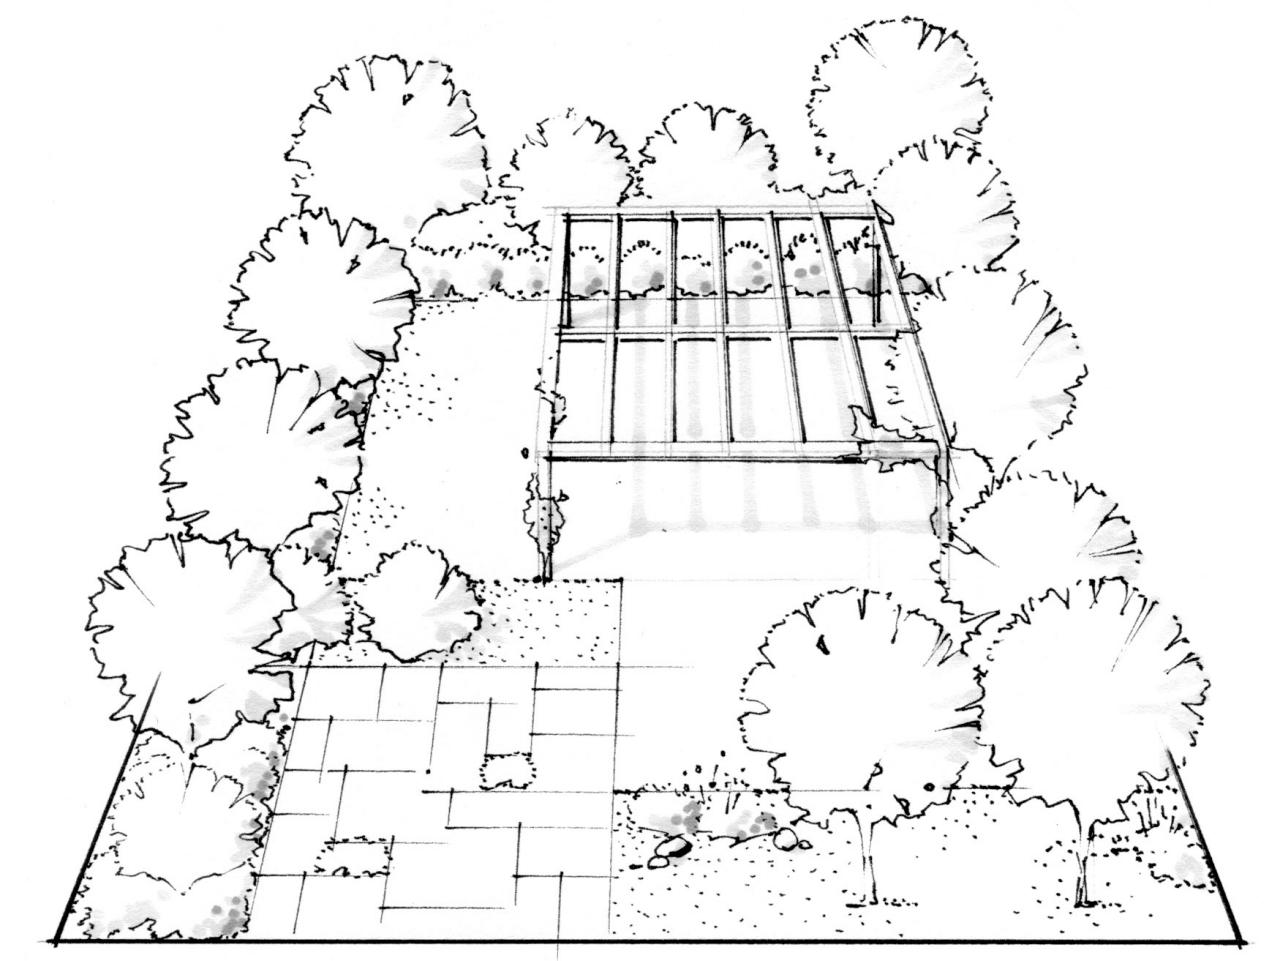 1280x961 How Do I Draw A Scale Plan For My Square Or Rectangular Yard